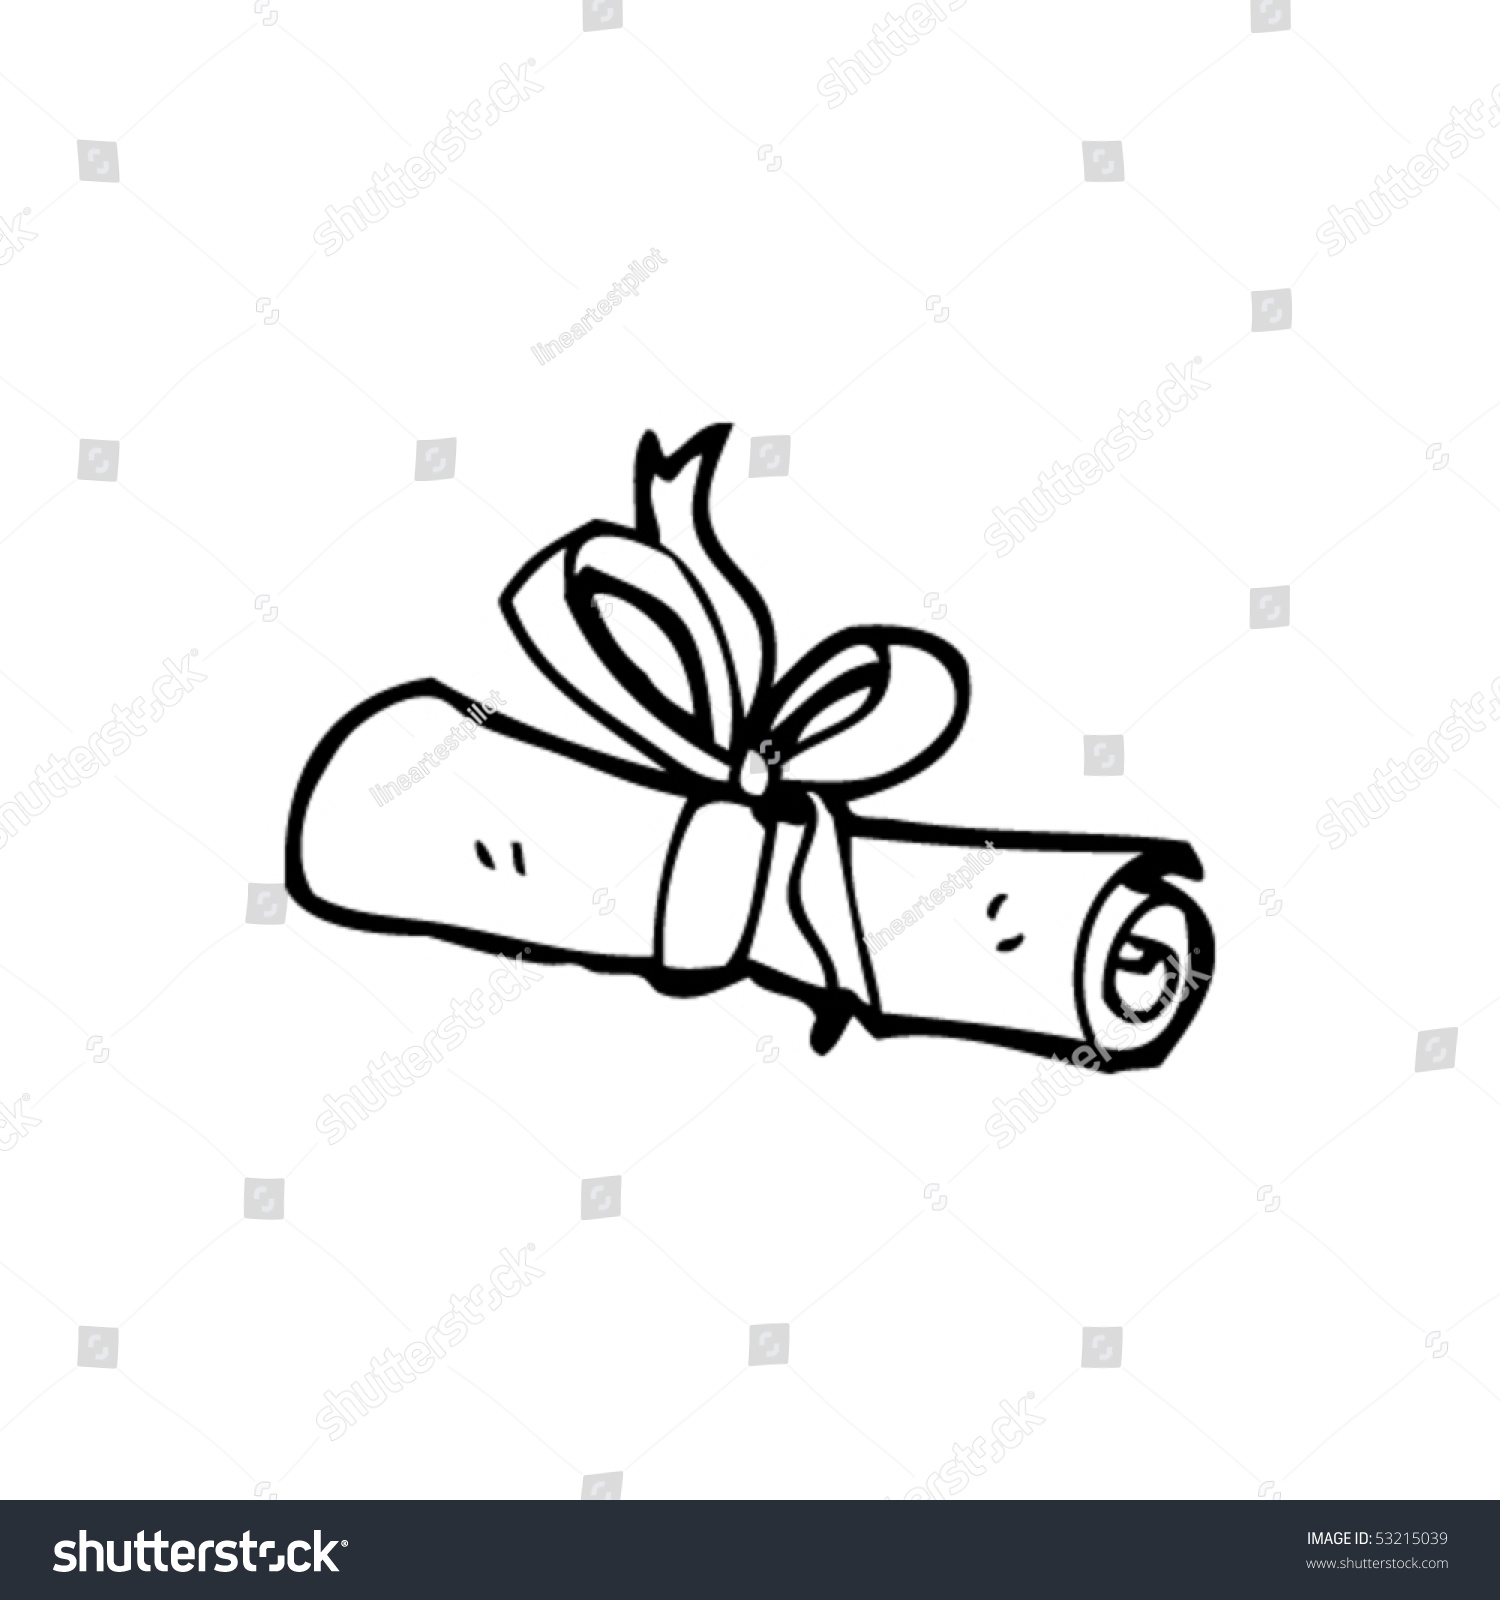 Diploma Drawing Stock Vector 53215039 : Shutterstock